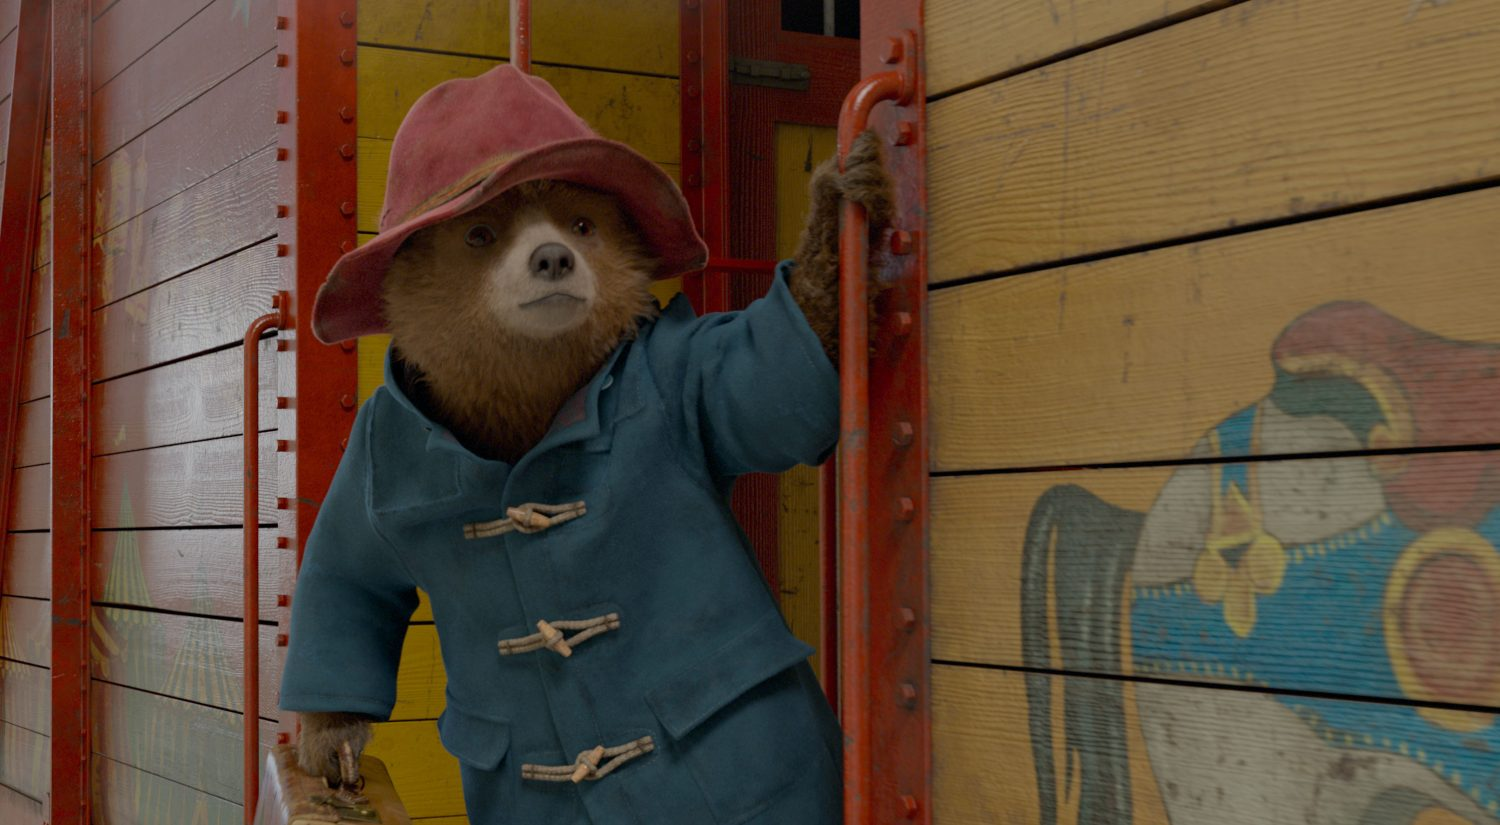 Crítica: As Aventuras de Paddington 2 (Paddington 2, Reino Unido, 2018)